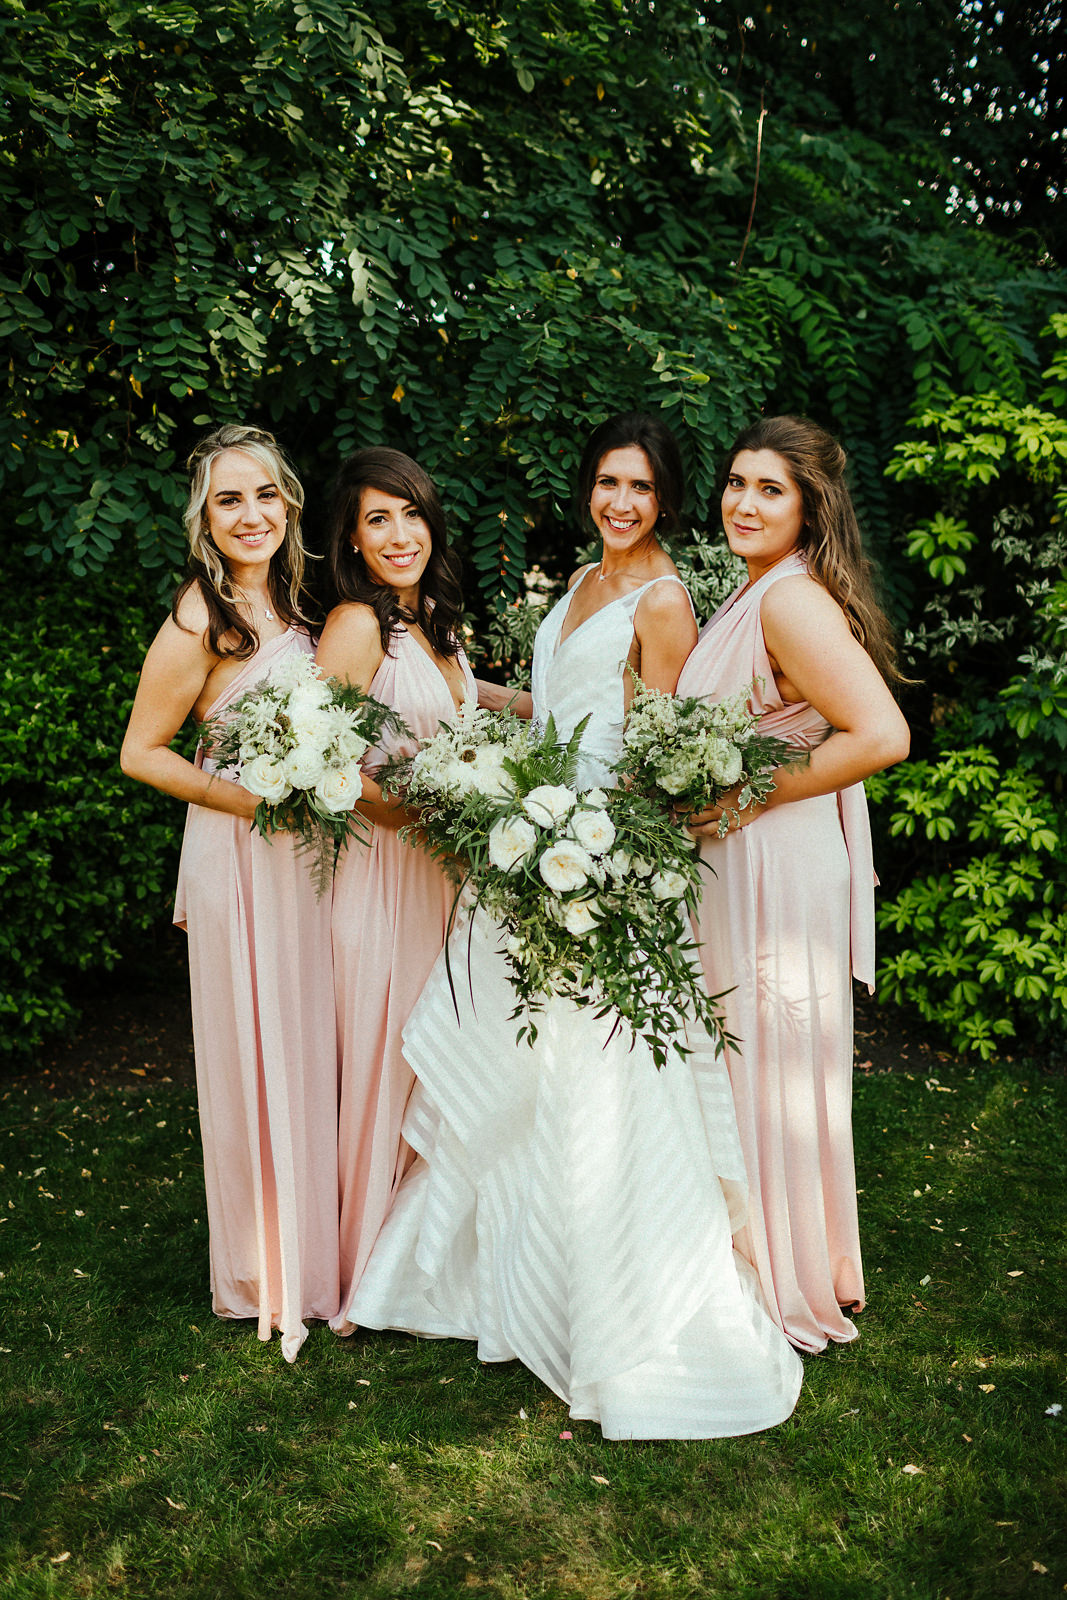 Stunning bridesmaids in pink dresses